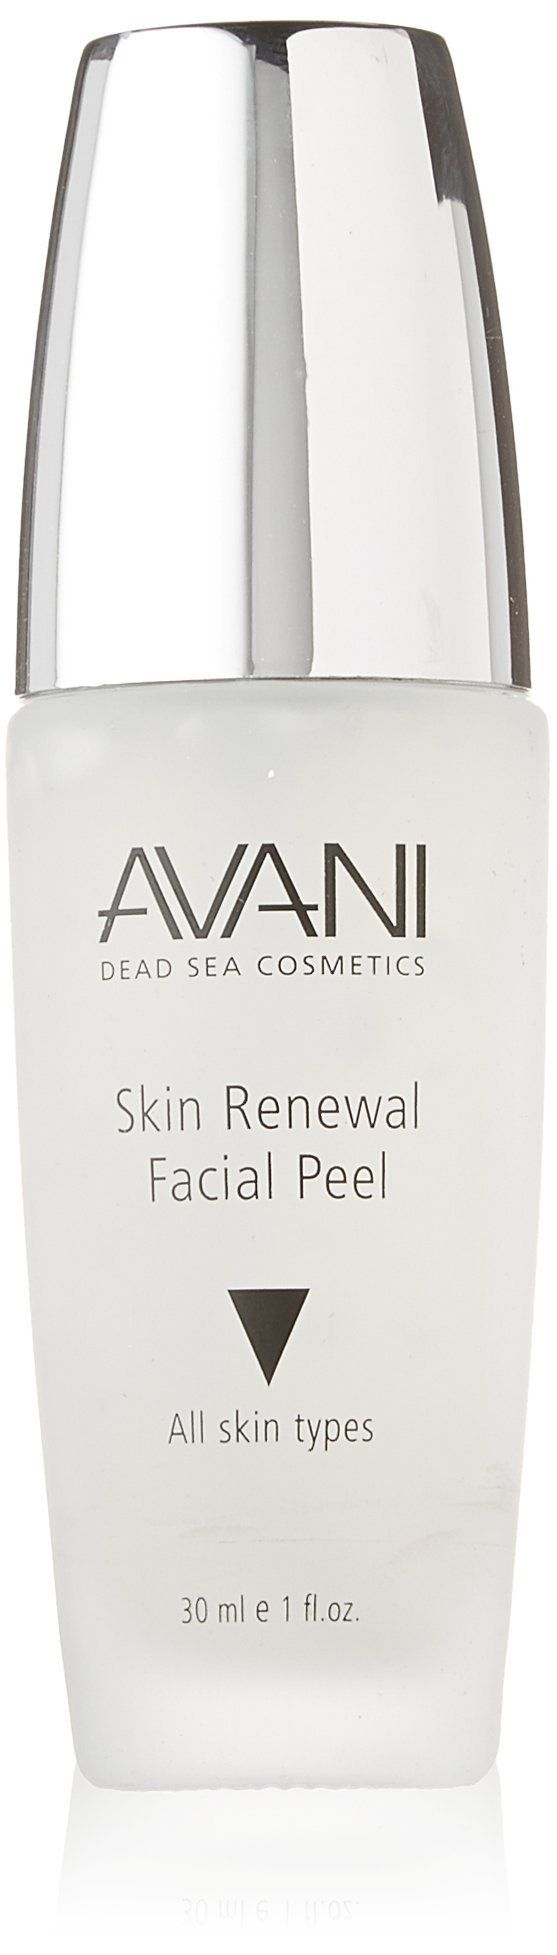 AVANI Skin Renewal Facial Peel, 1 fl. oz. Skin Renewal Facial Peel Enriched with beneficial vitamins E & C, this Skin Renewal Facial Peel thoroughly cleanses the skin, ridding it of dead skin cells, excess oil and other impurities. Infused with nourishing Dead Sea Minerals, this non-abrasive Facial Peel will leave your skin feeling radiant and revitalized. Size: 30 ml e 1 fl.oz.